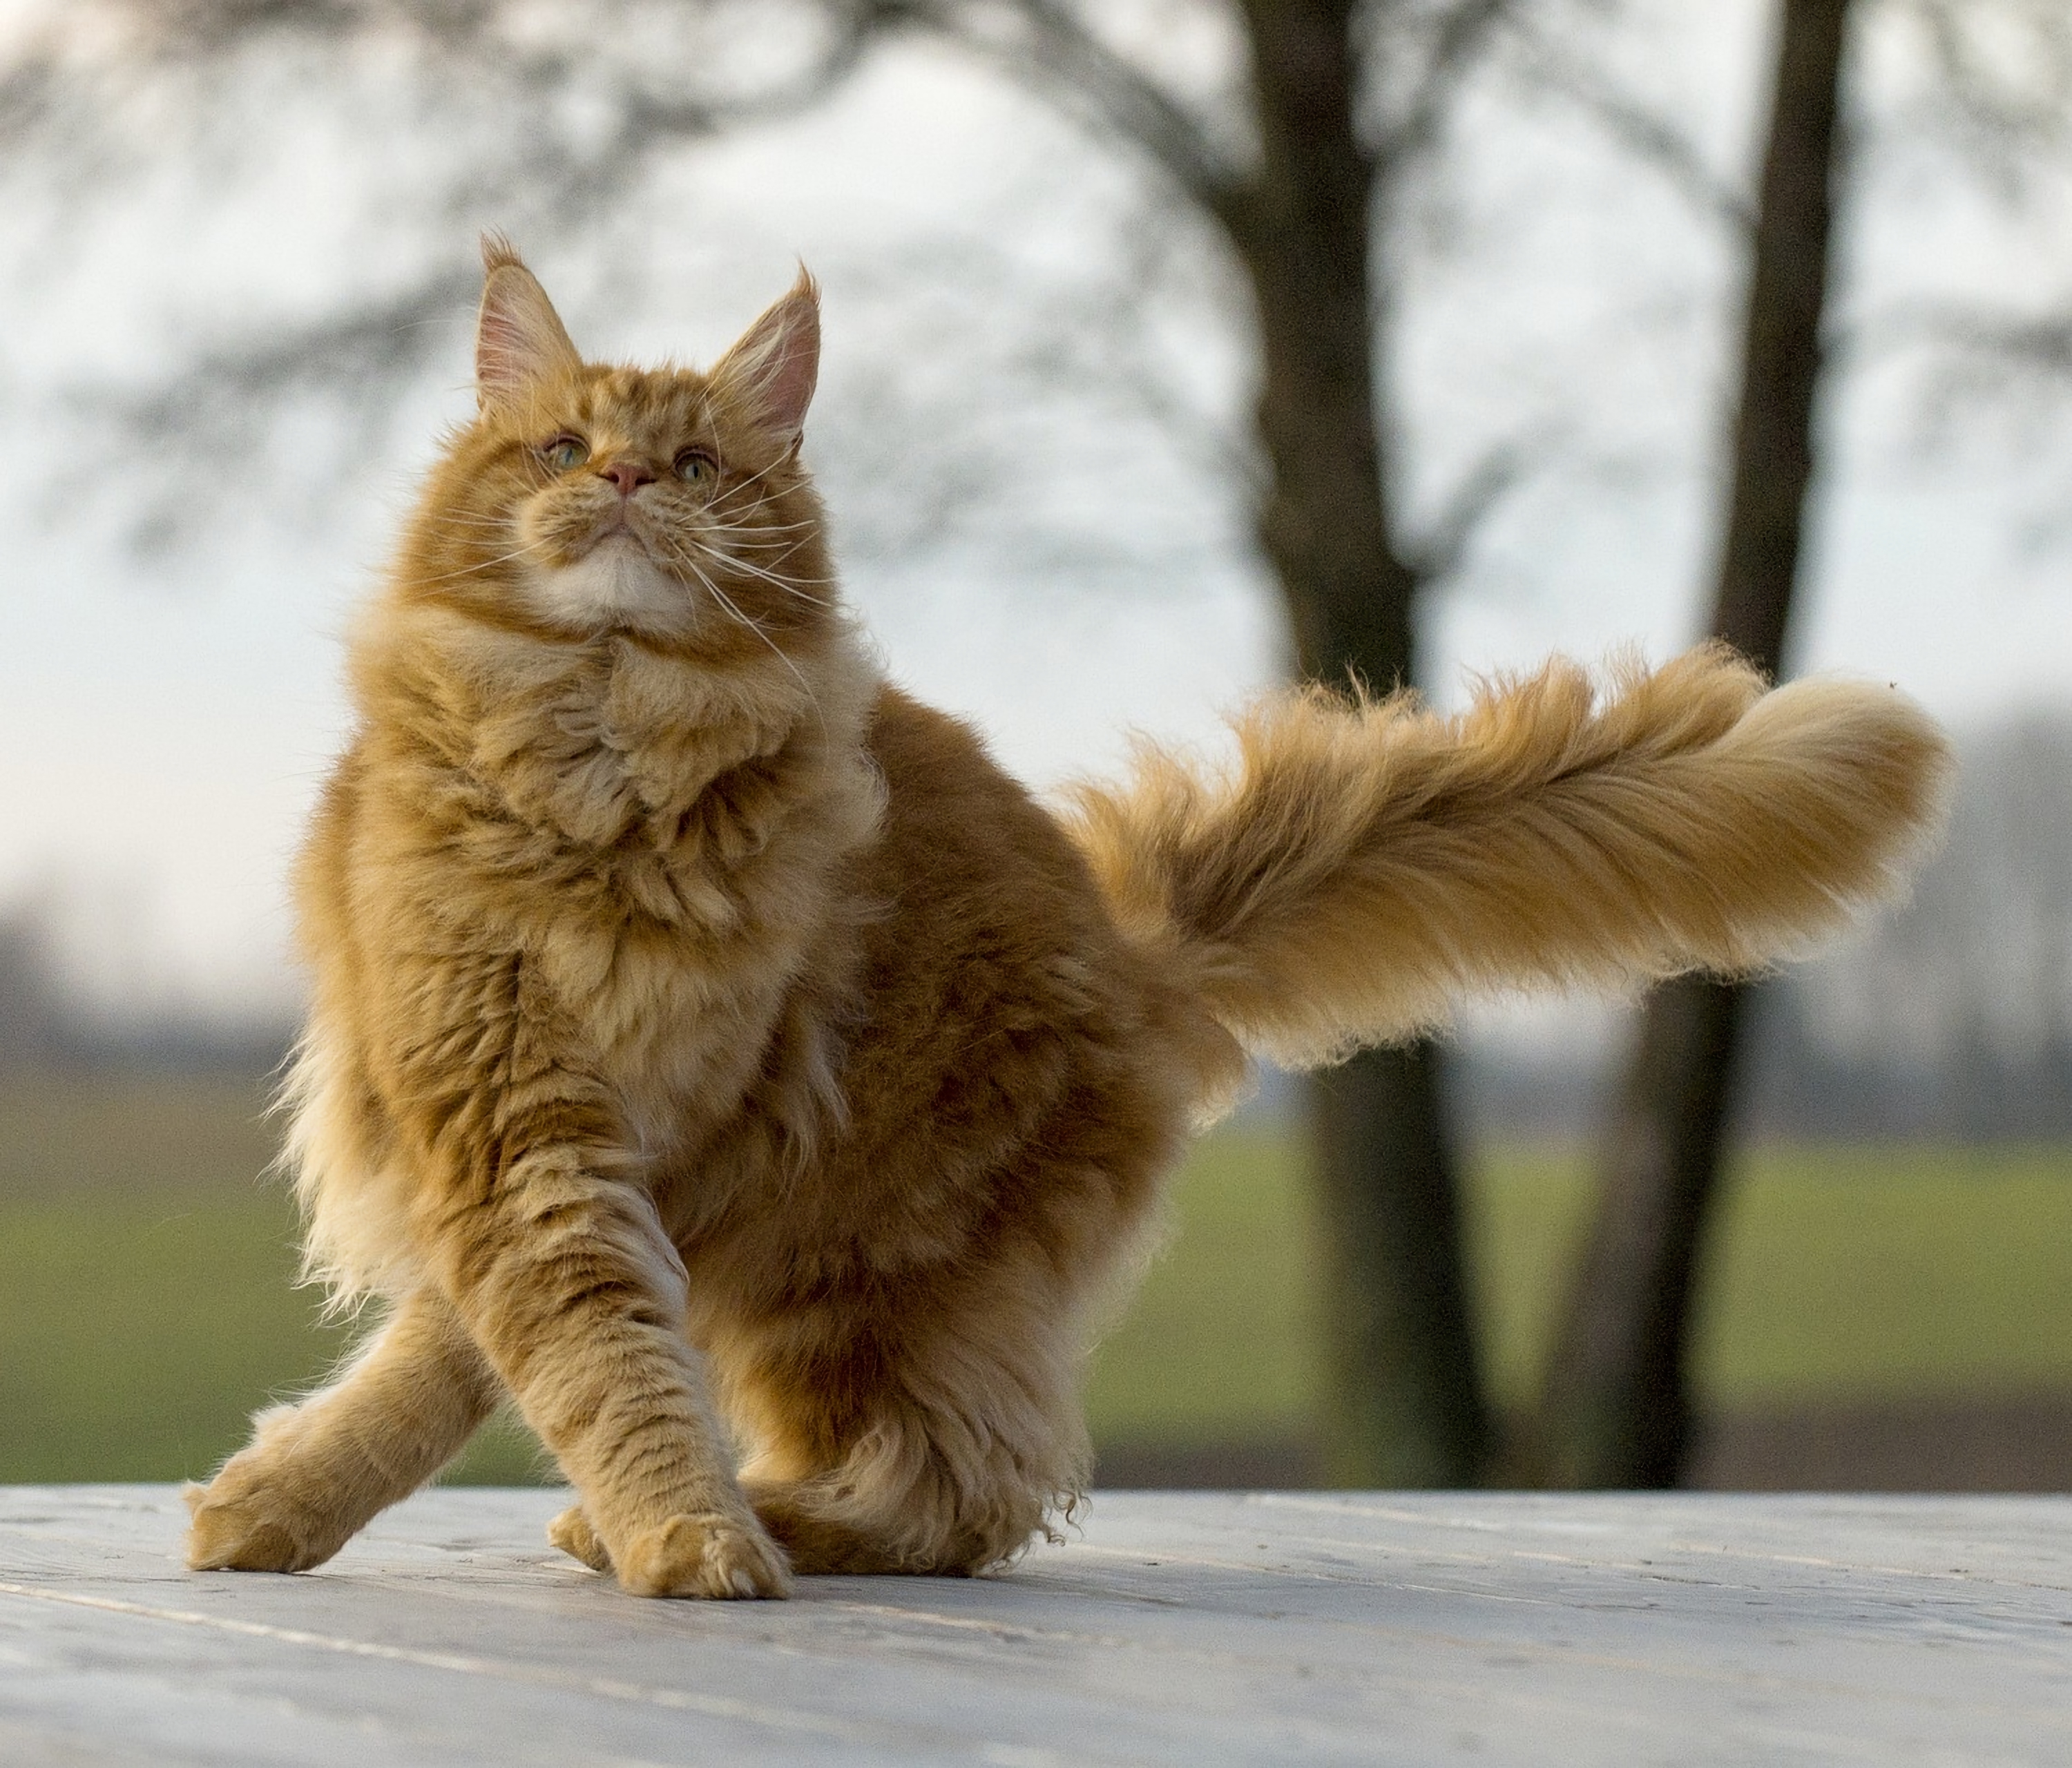 82803 download wallpaper Animals, Maine Coon, Maine, Cat, Fluffy, Cool screensavers and pictures for free